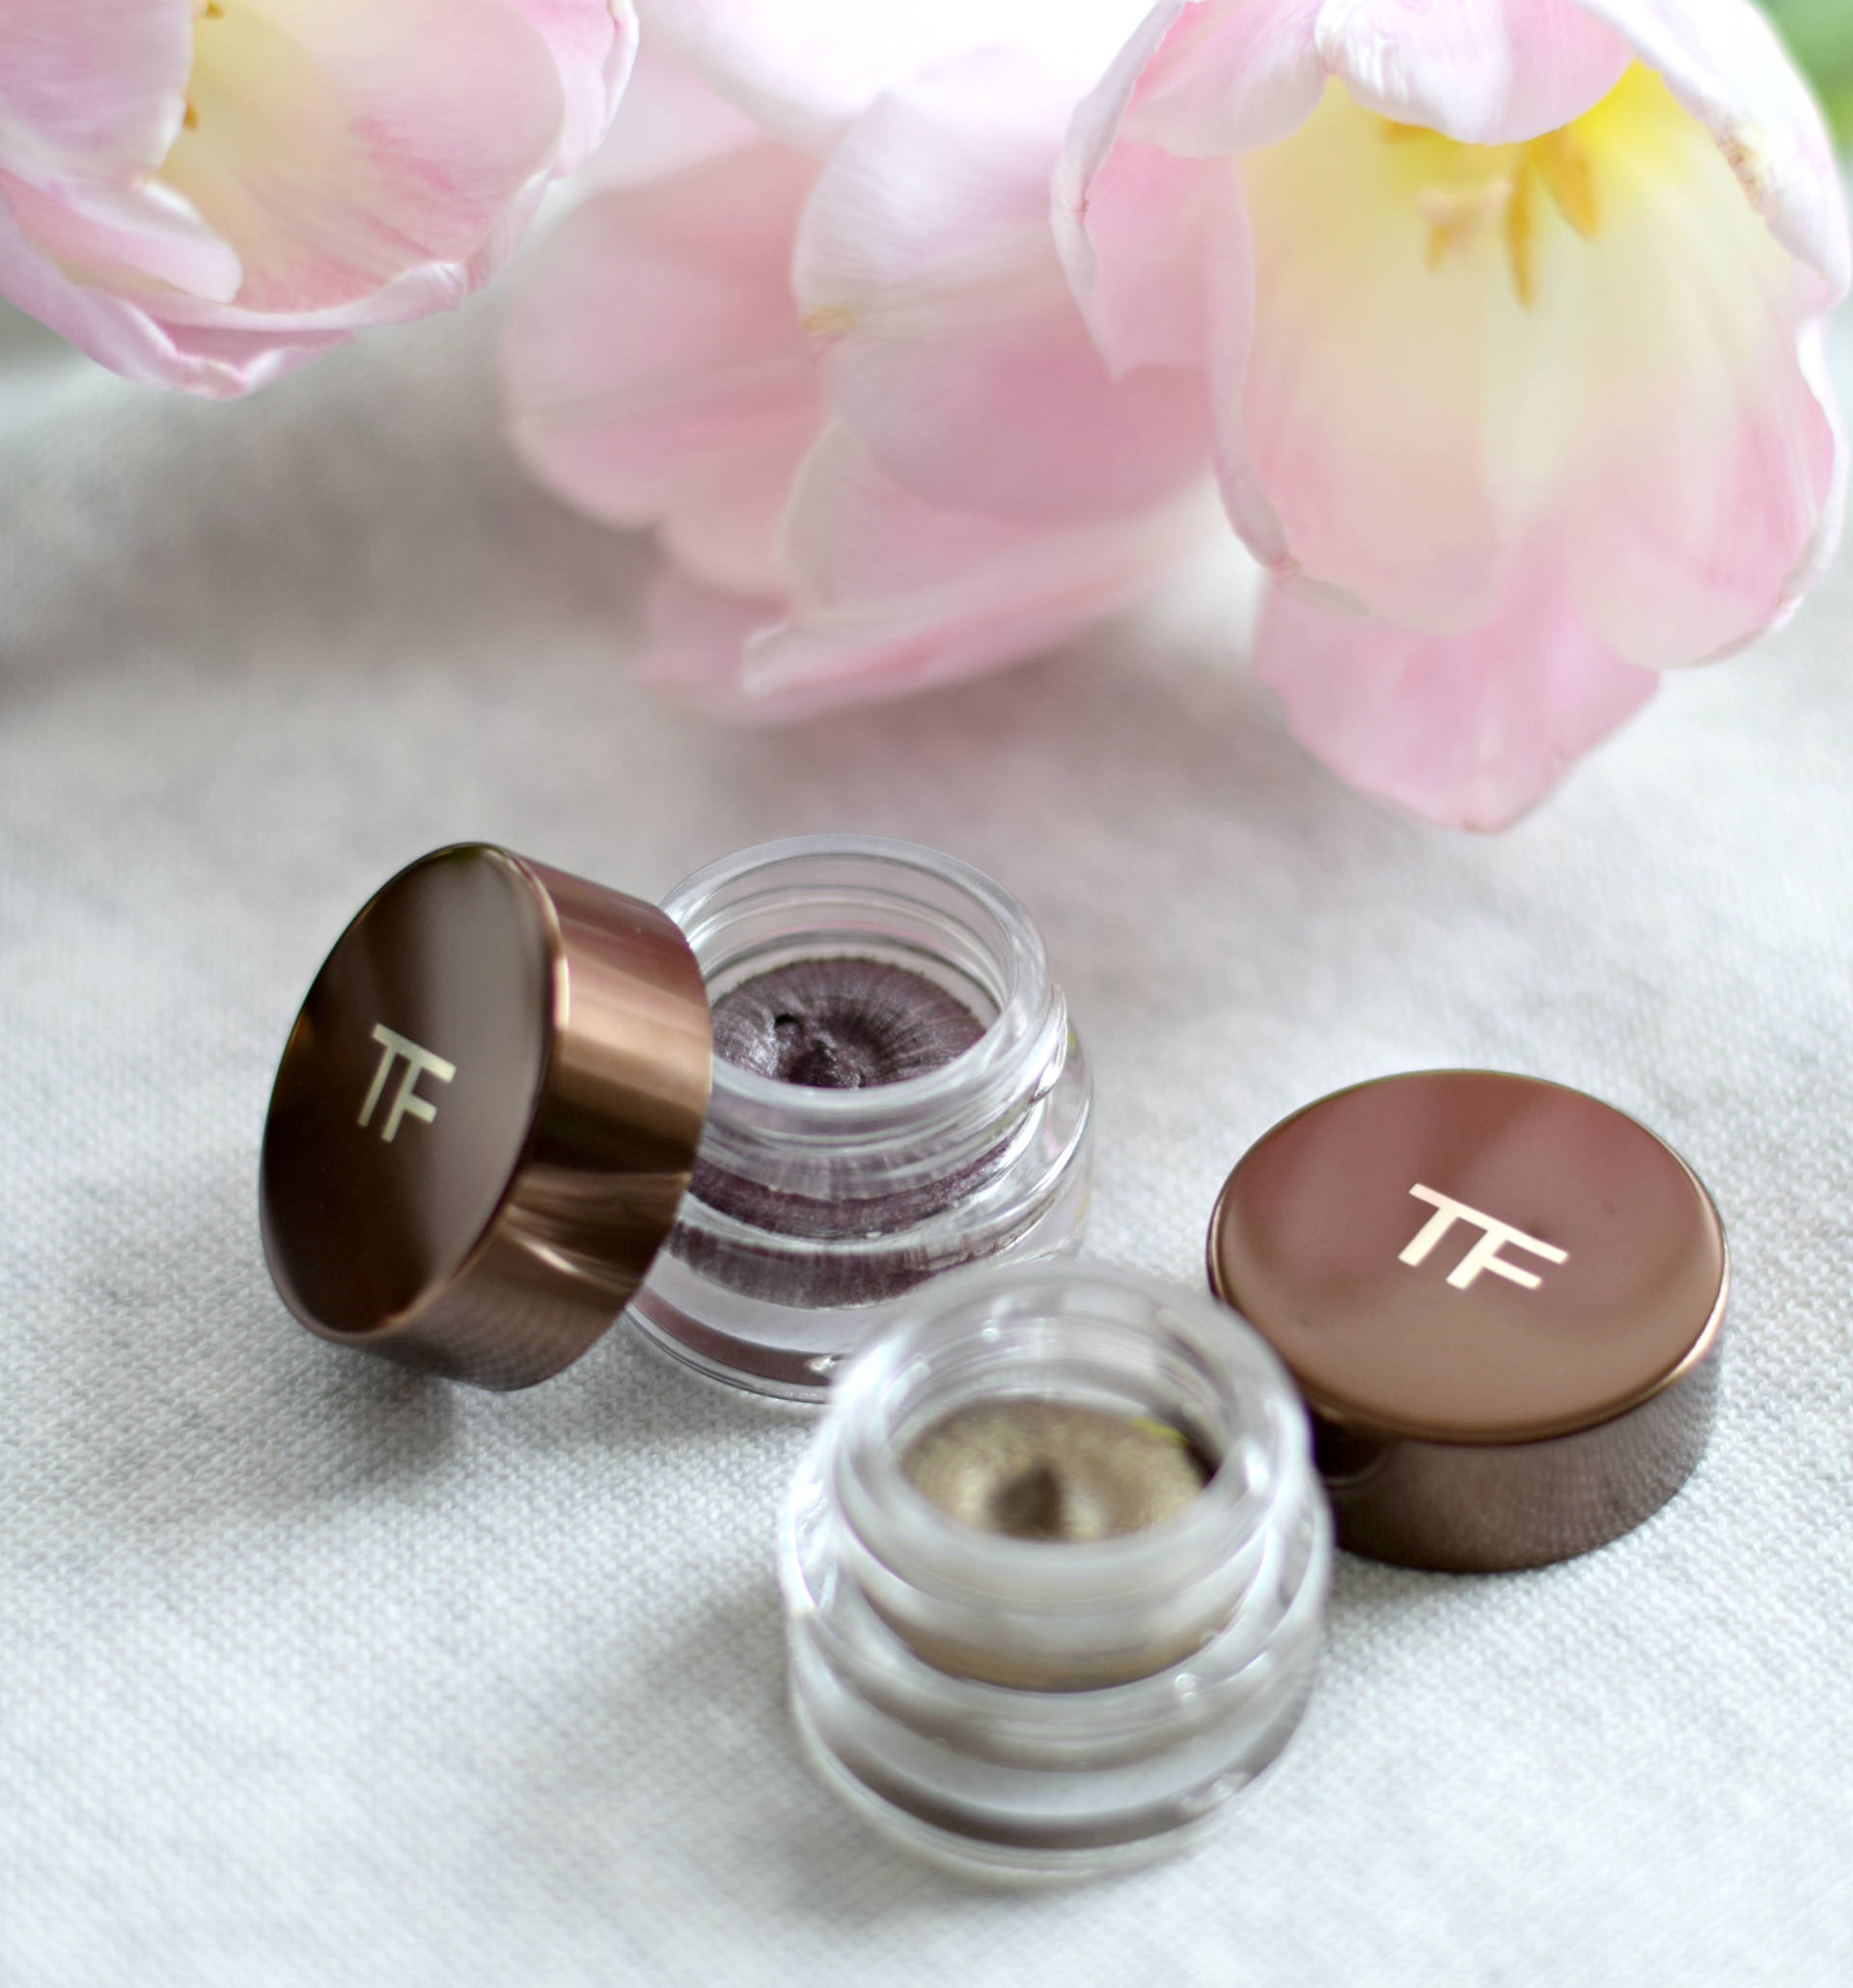 TOM FORD BEAUTY SS16 RUNWAY COLLECTION REVIEW